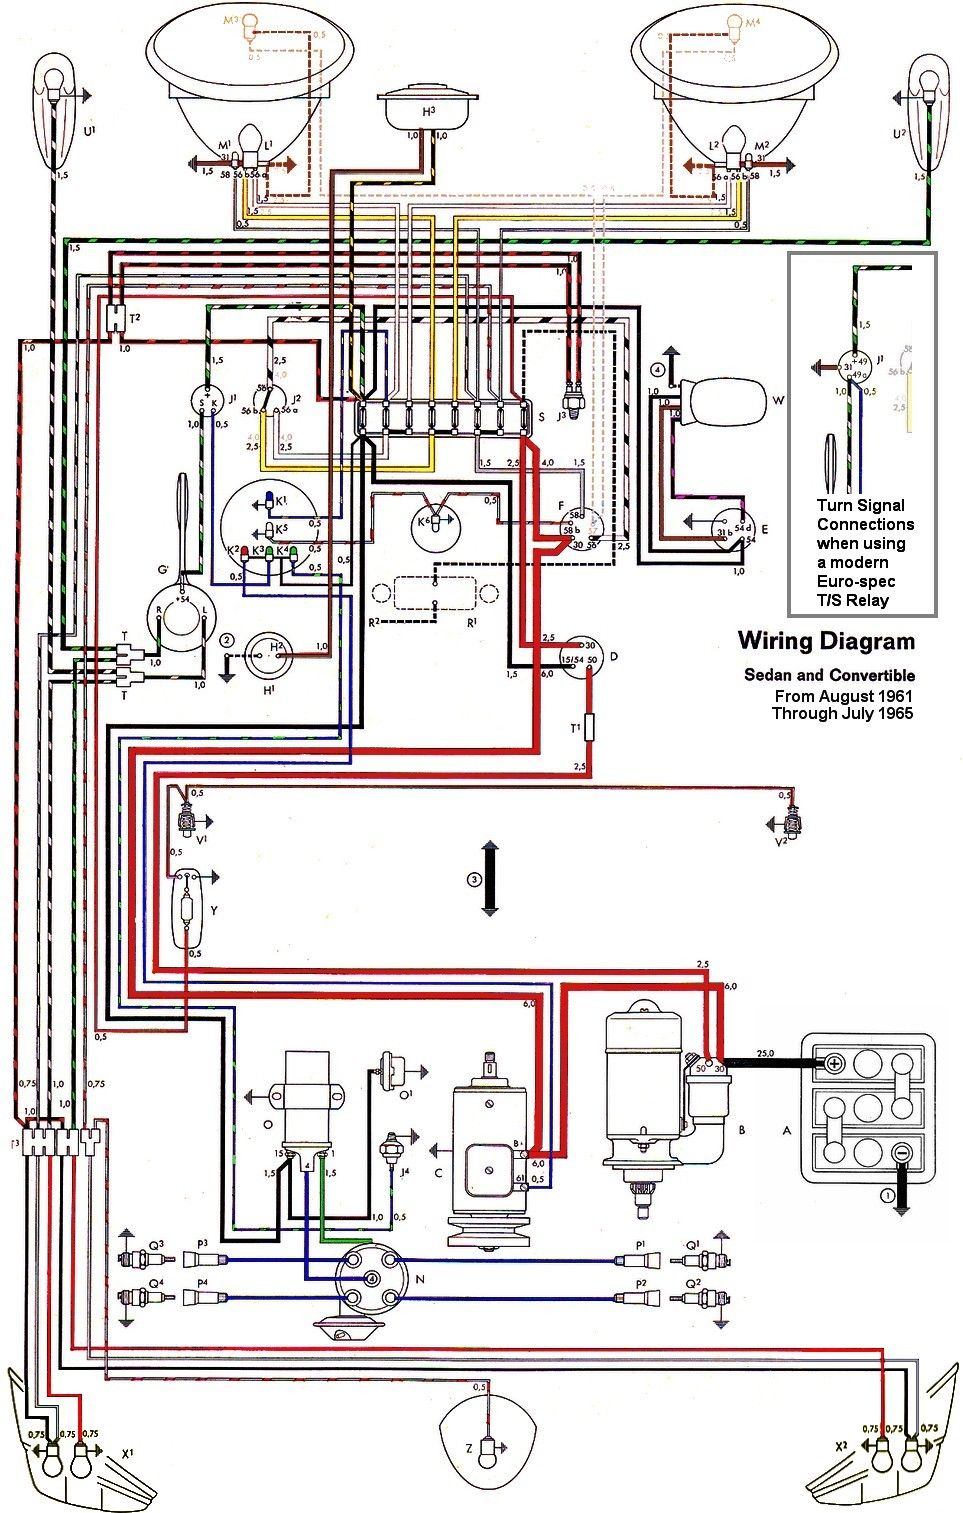 1964 vw wiring diagram diagram data schema 1964 vw wiring diagram [ 963 x 1513 Pixel ]